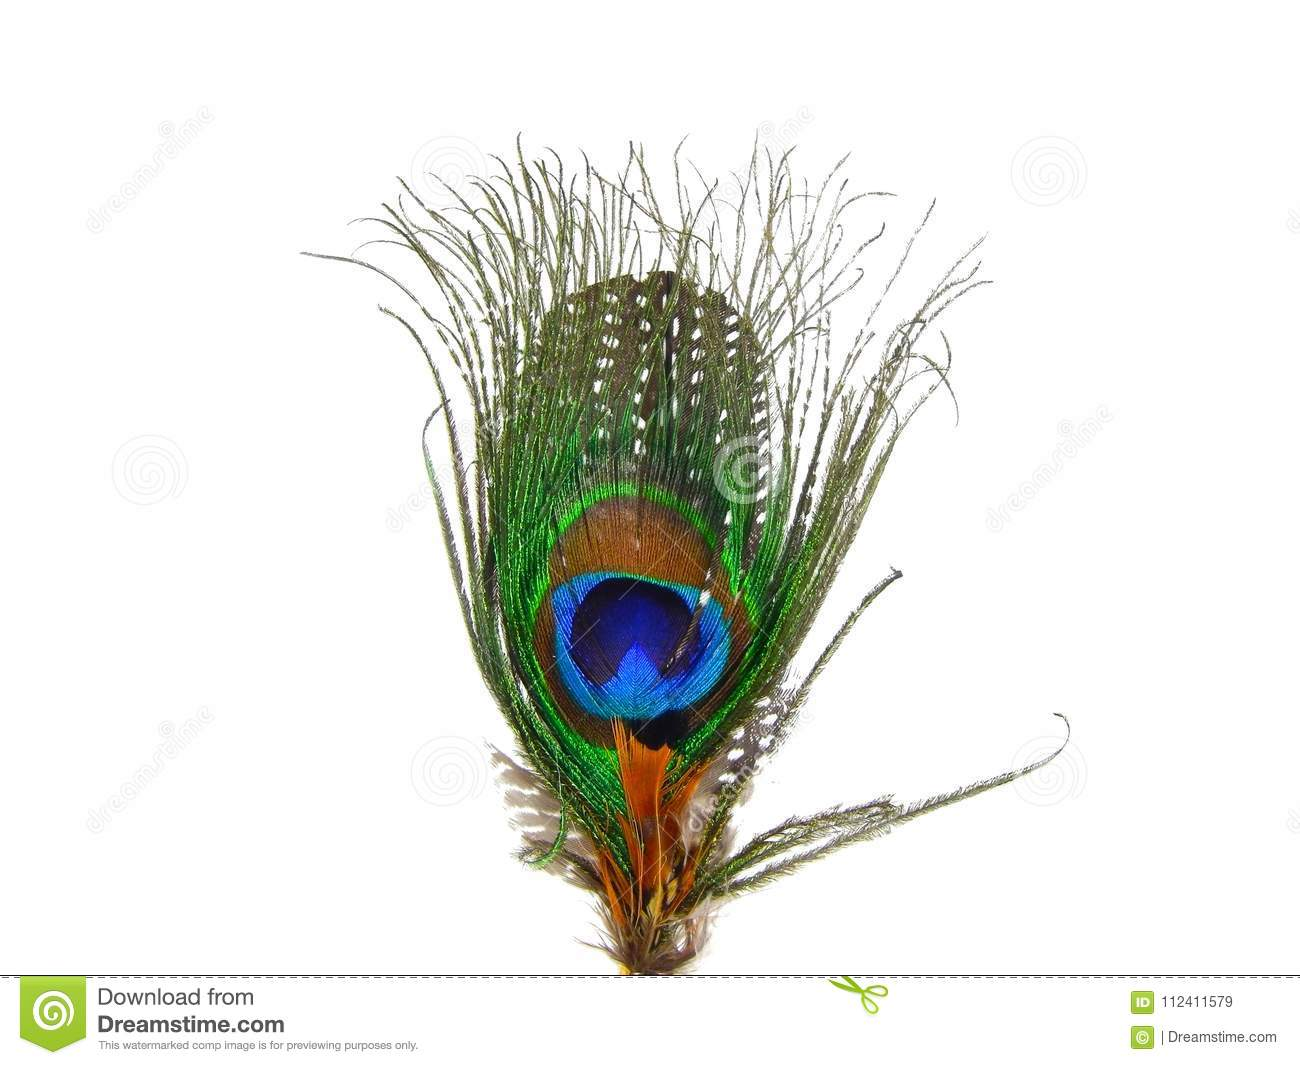 Beautiful peacock feather close up on isolated white background